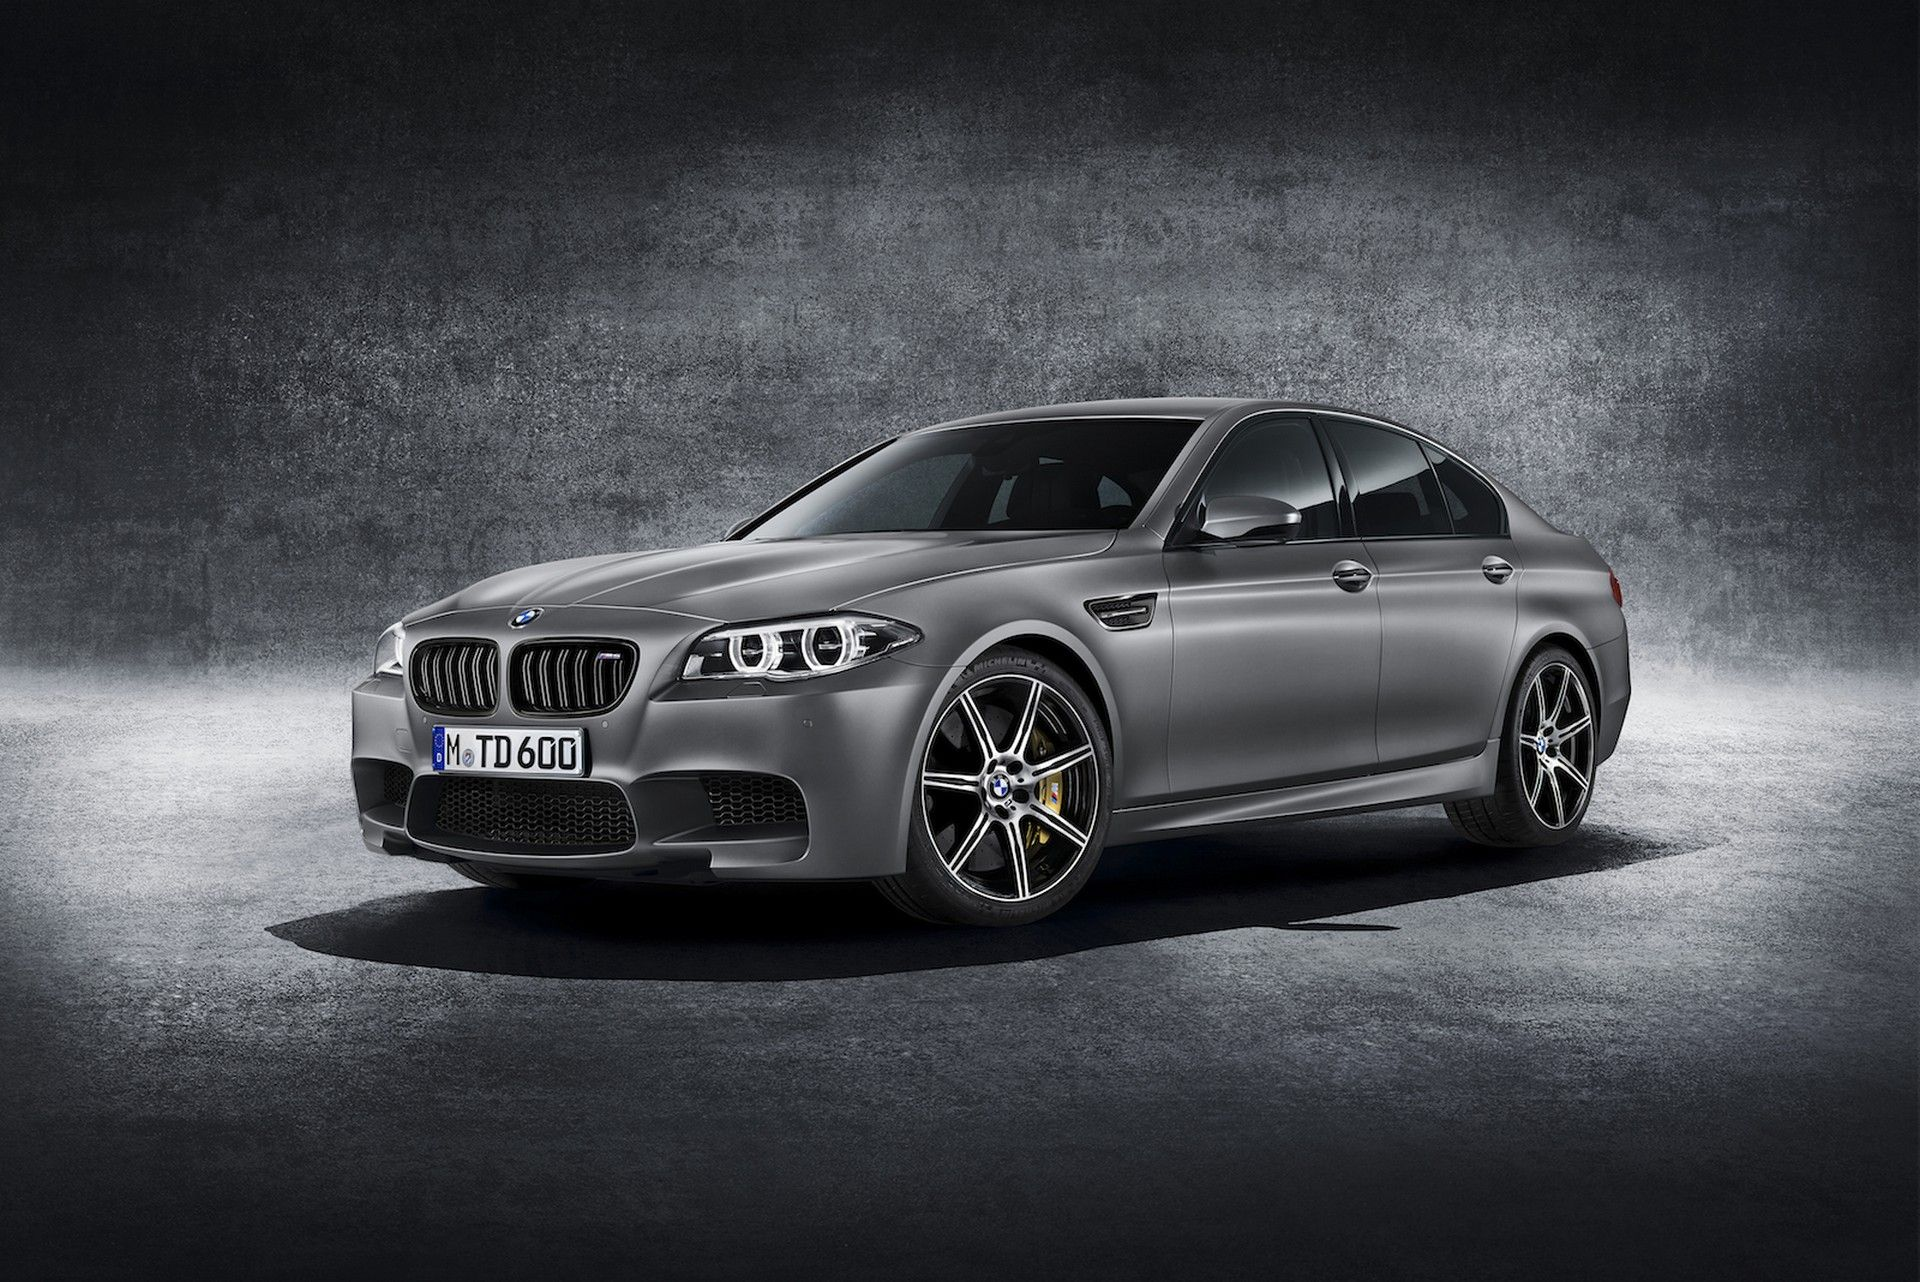 Bmw 540i Carbon Black M Performance Package 6 Cylinders Inline